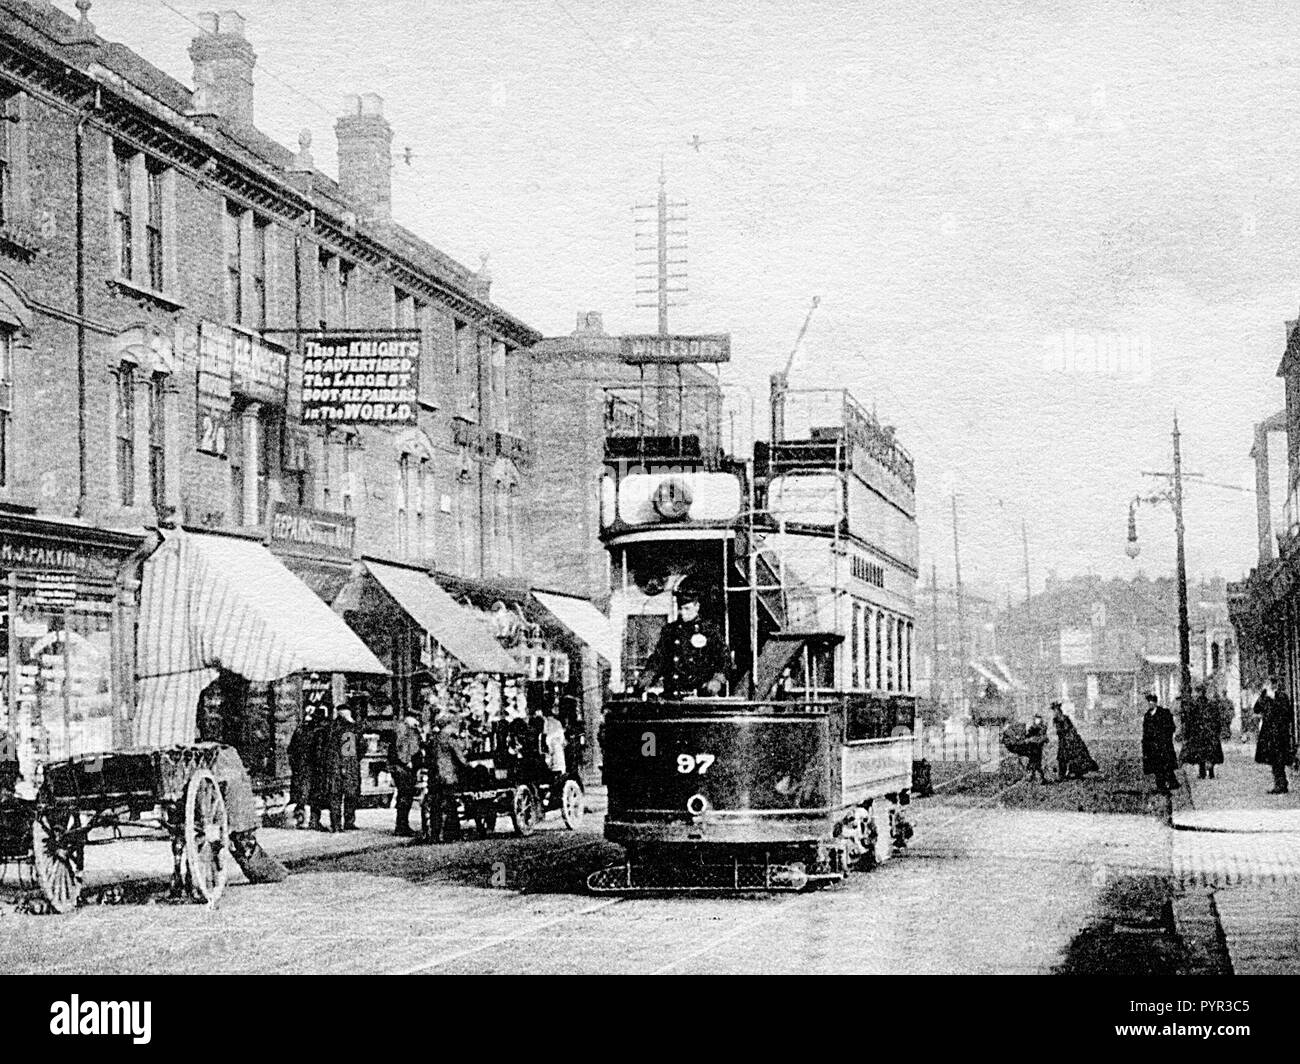 Church Road, Willesden early 1900's - Stock Image